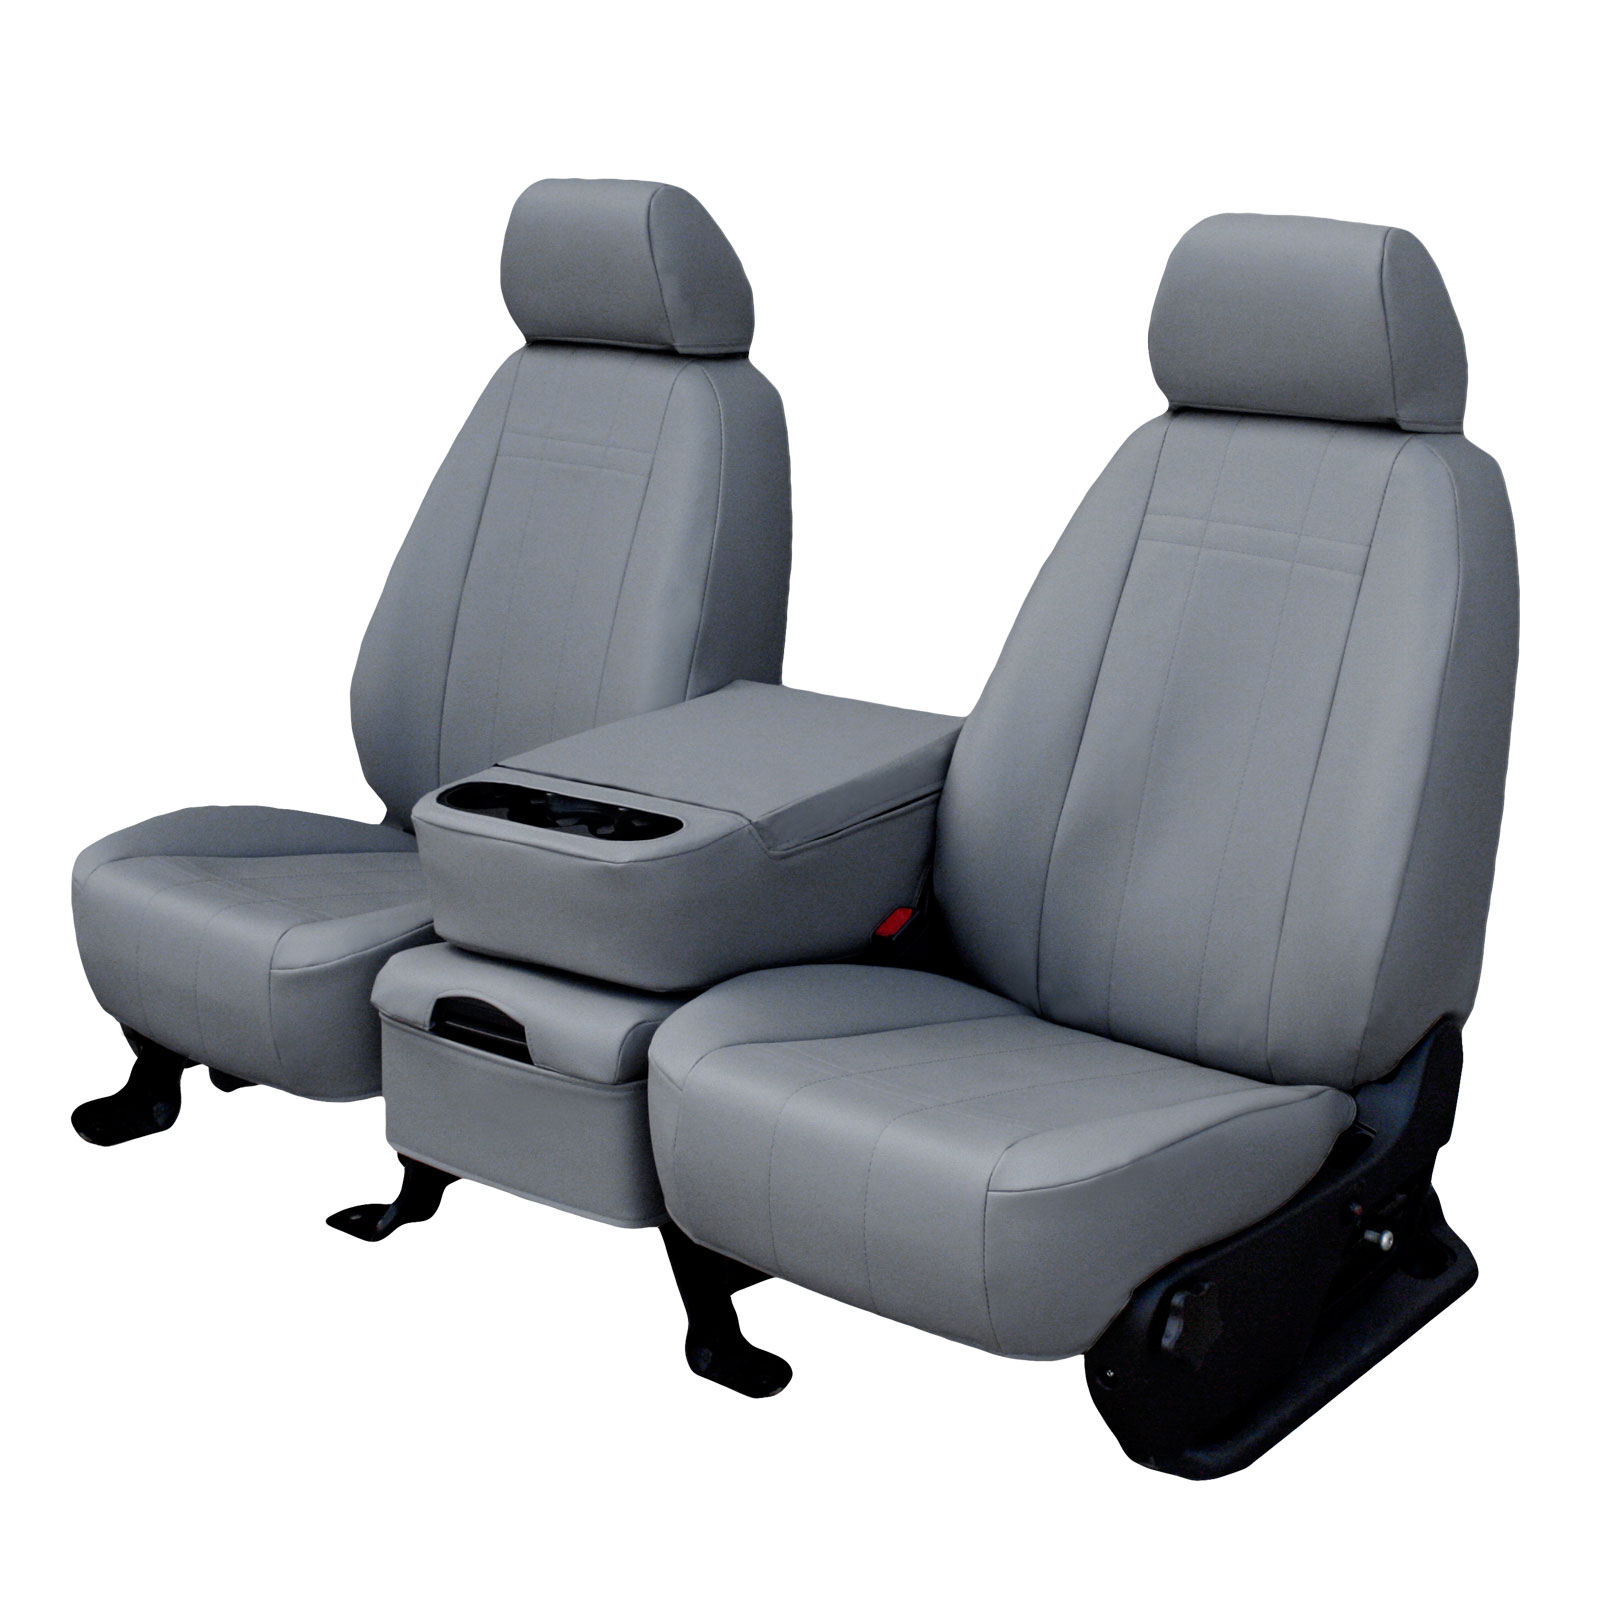 chair covers for cars igloo fishing mabinogi leather seat buy online trucks and suvs